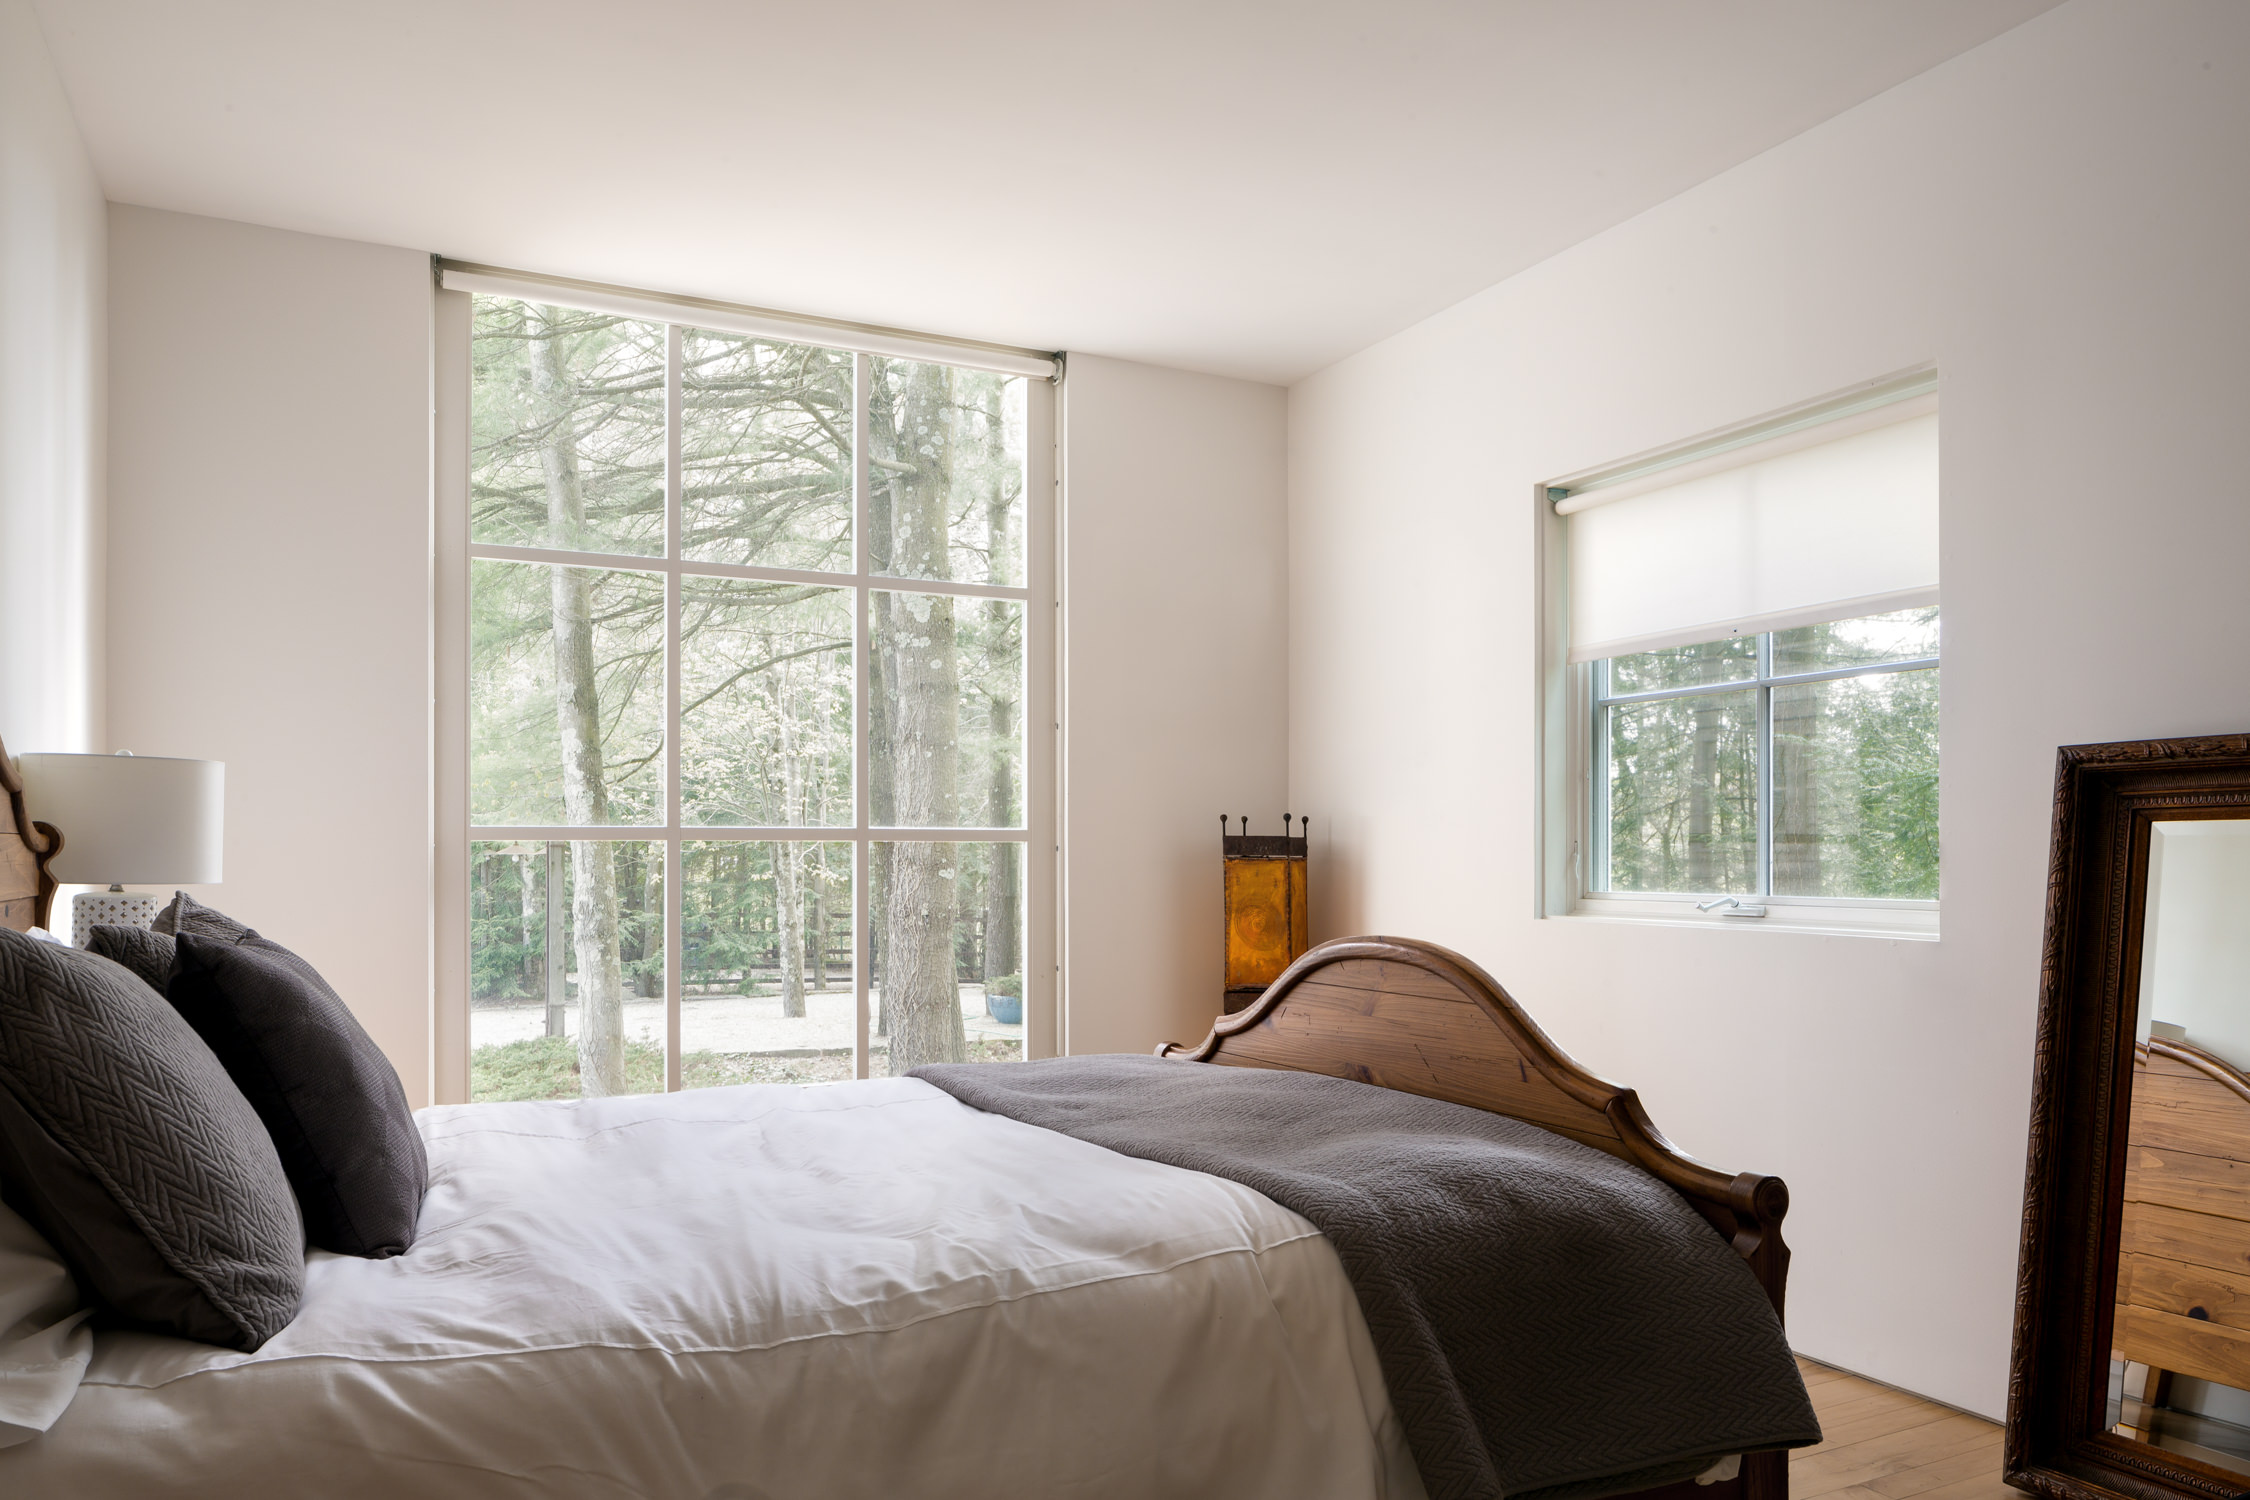 A guest bedroom by Vermont professional photographer Stina Booth